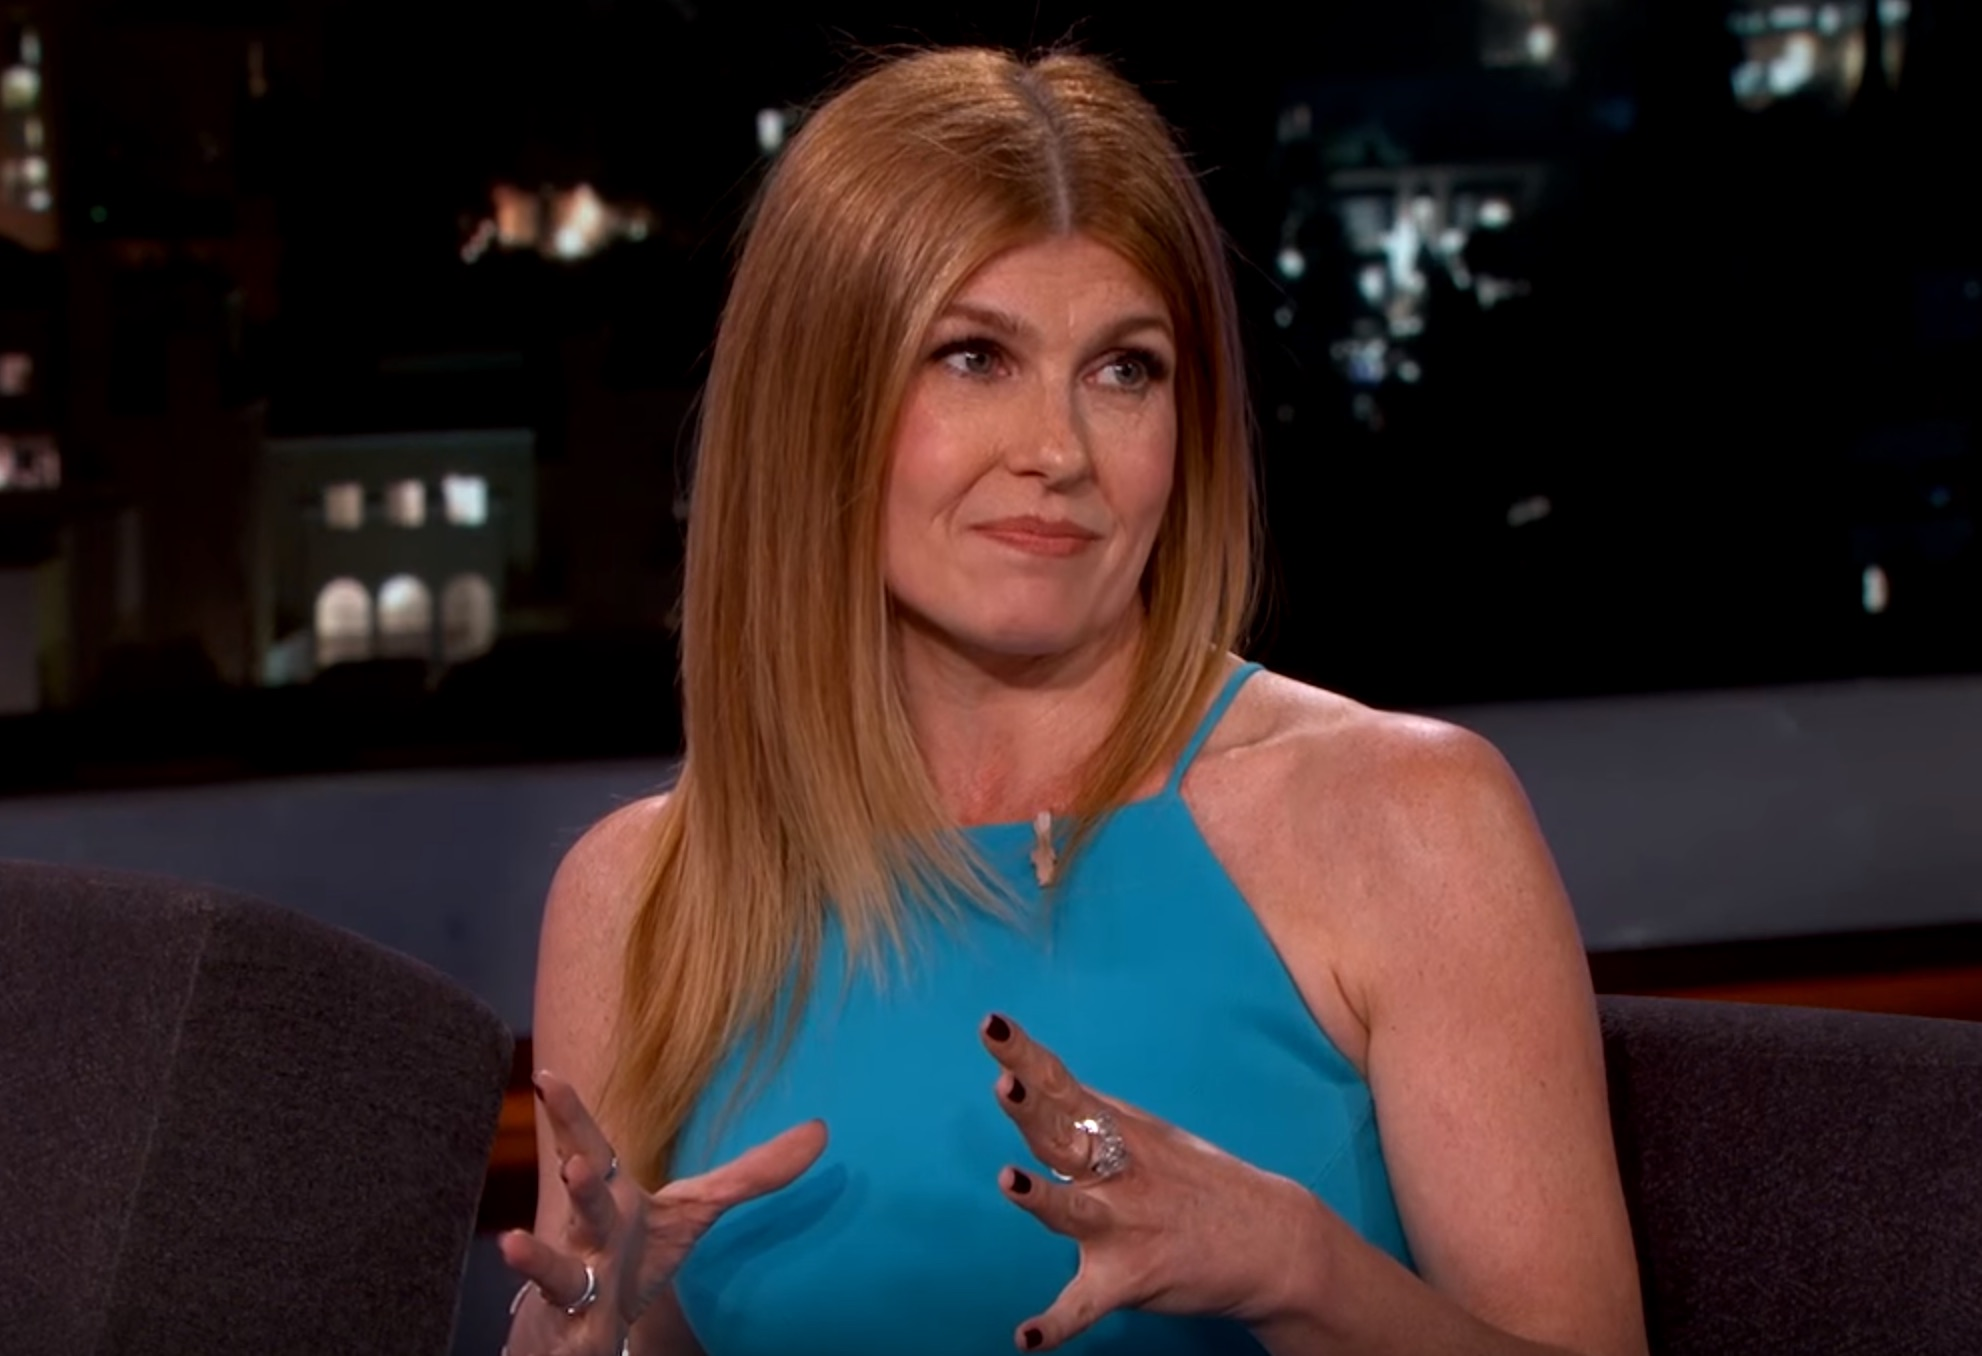 Connie Britton's 5-year-old son is an amazing drummer